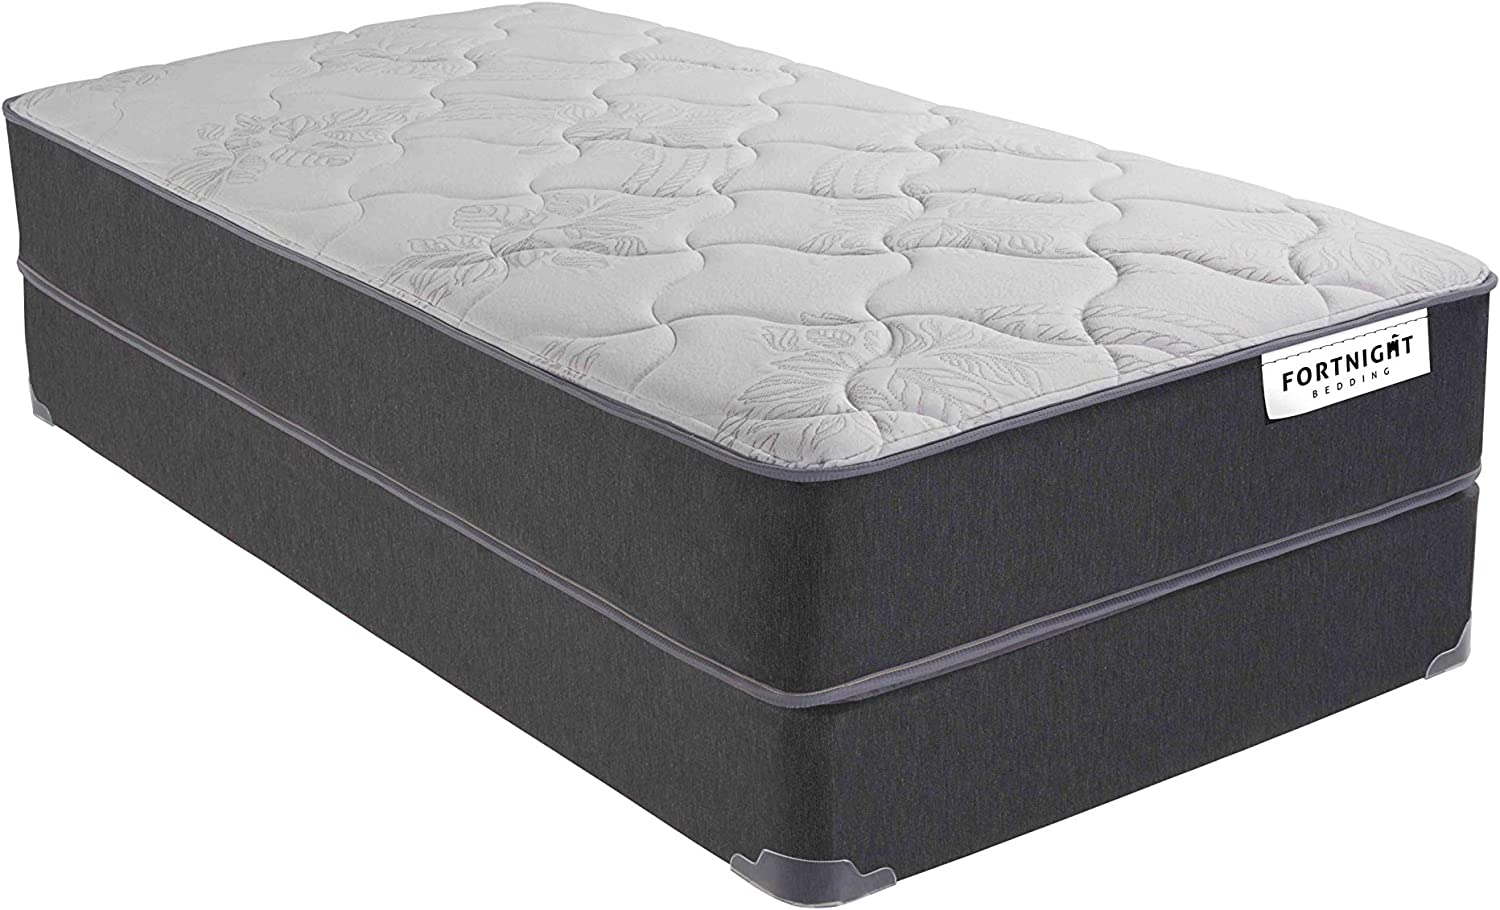 TUFT NEEDLE Twin Mattress Bed in a Box Utilizing Proprietary T N Adaptive Foam Sleeps Cooler with More Pressure Relief Support Than Memory Foam Non-Toxic Certified 100-Night Sleep Trial 10-Year Warranty